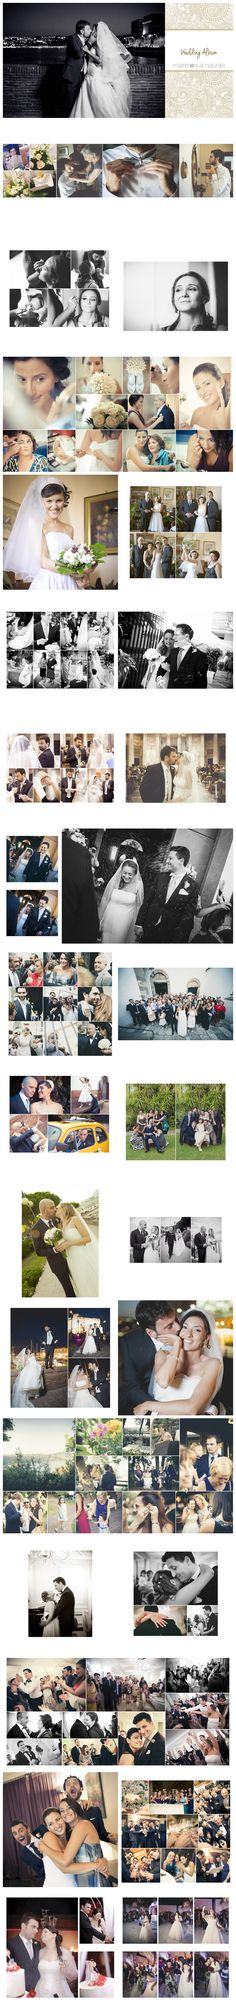 Wedding album design, album di matrimonio, fotolibro